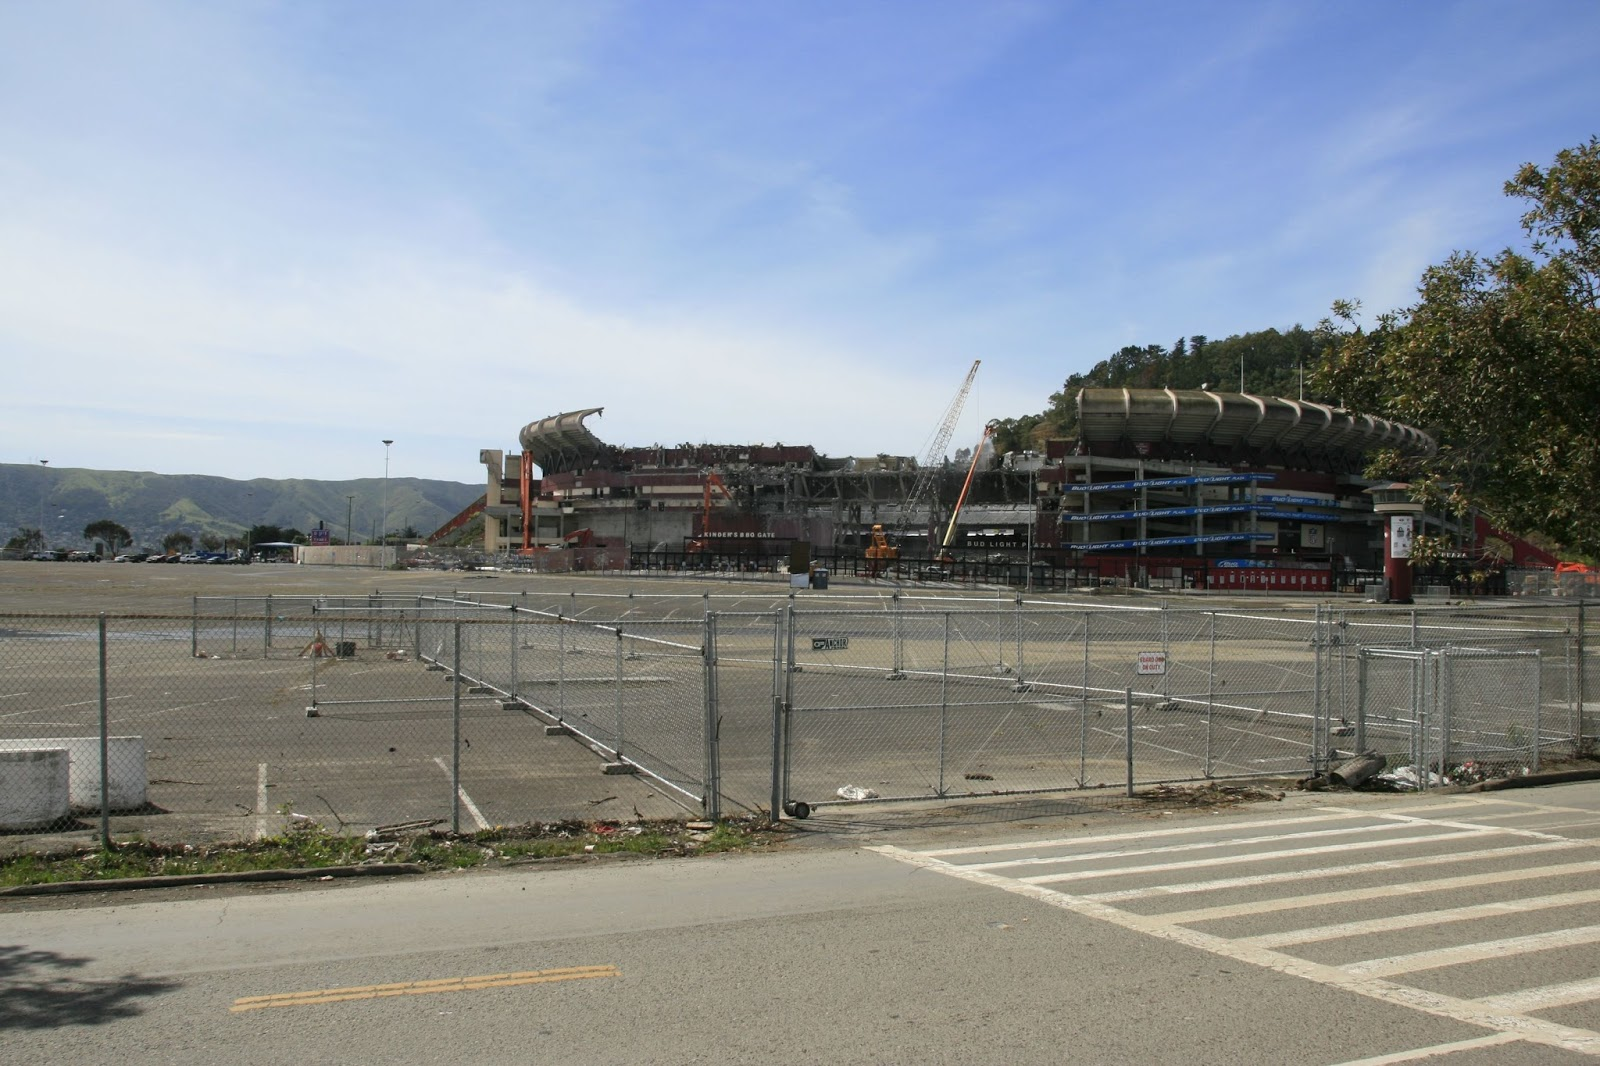 candlestick park demolition - Images for candlestick park demolition